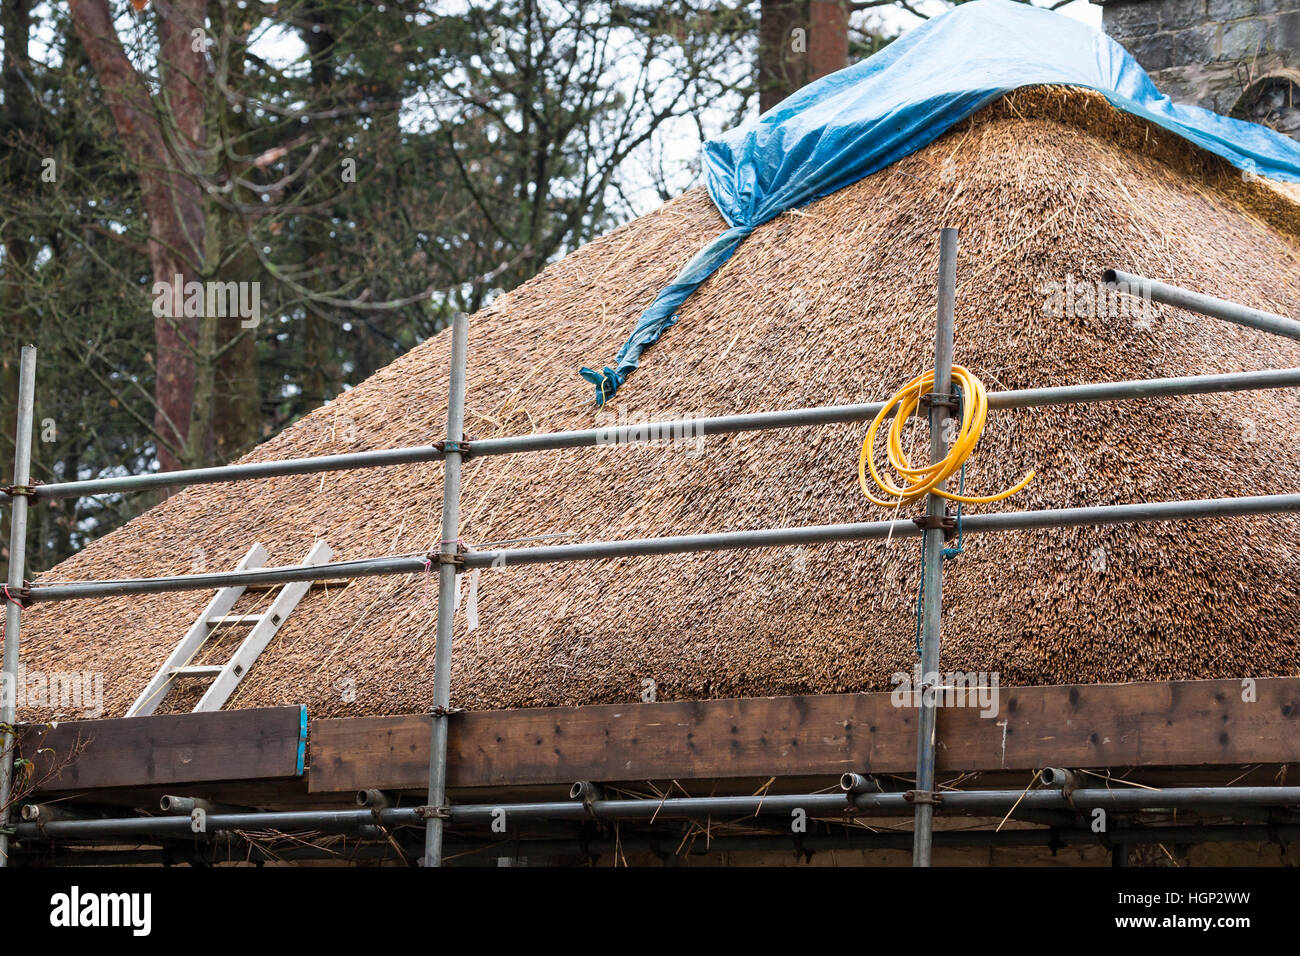 thatched roof under repair with scaffolding - Stock Image